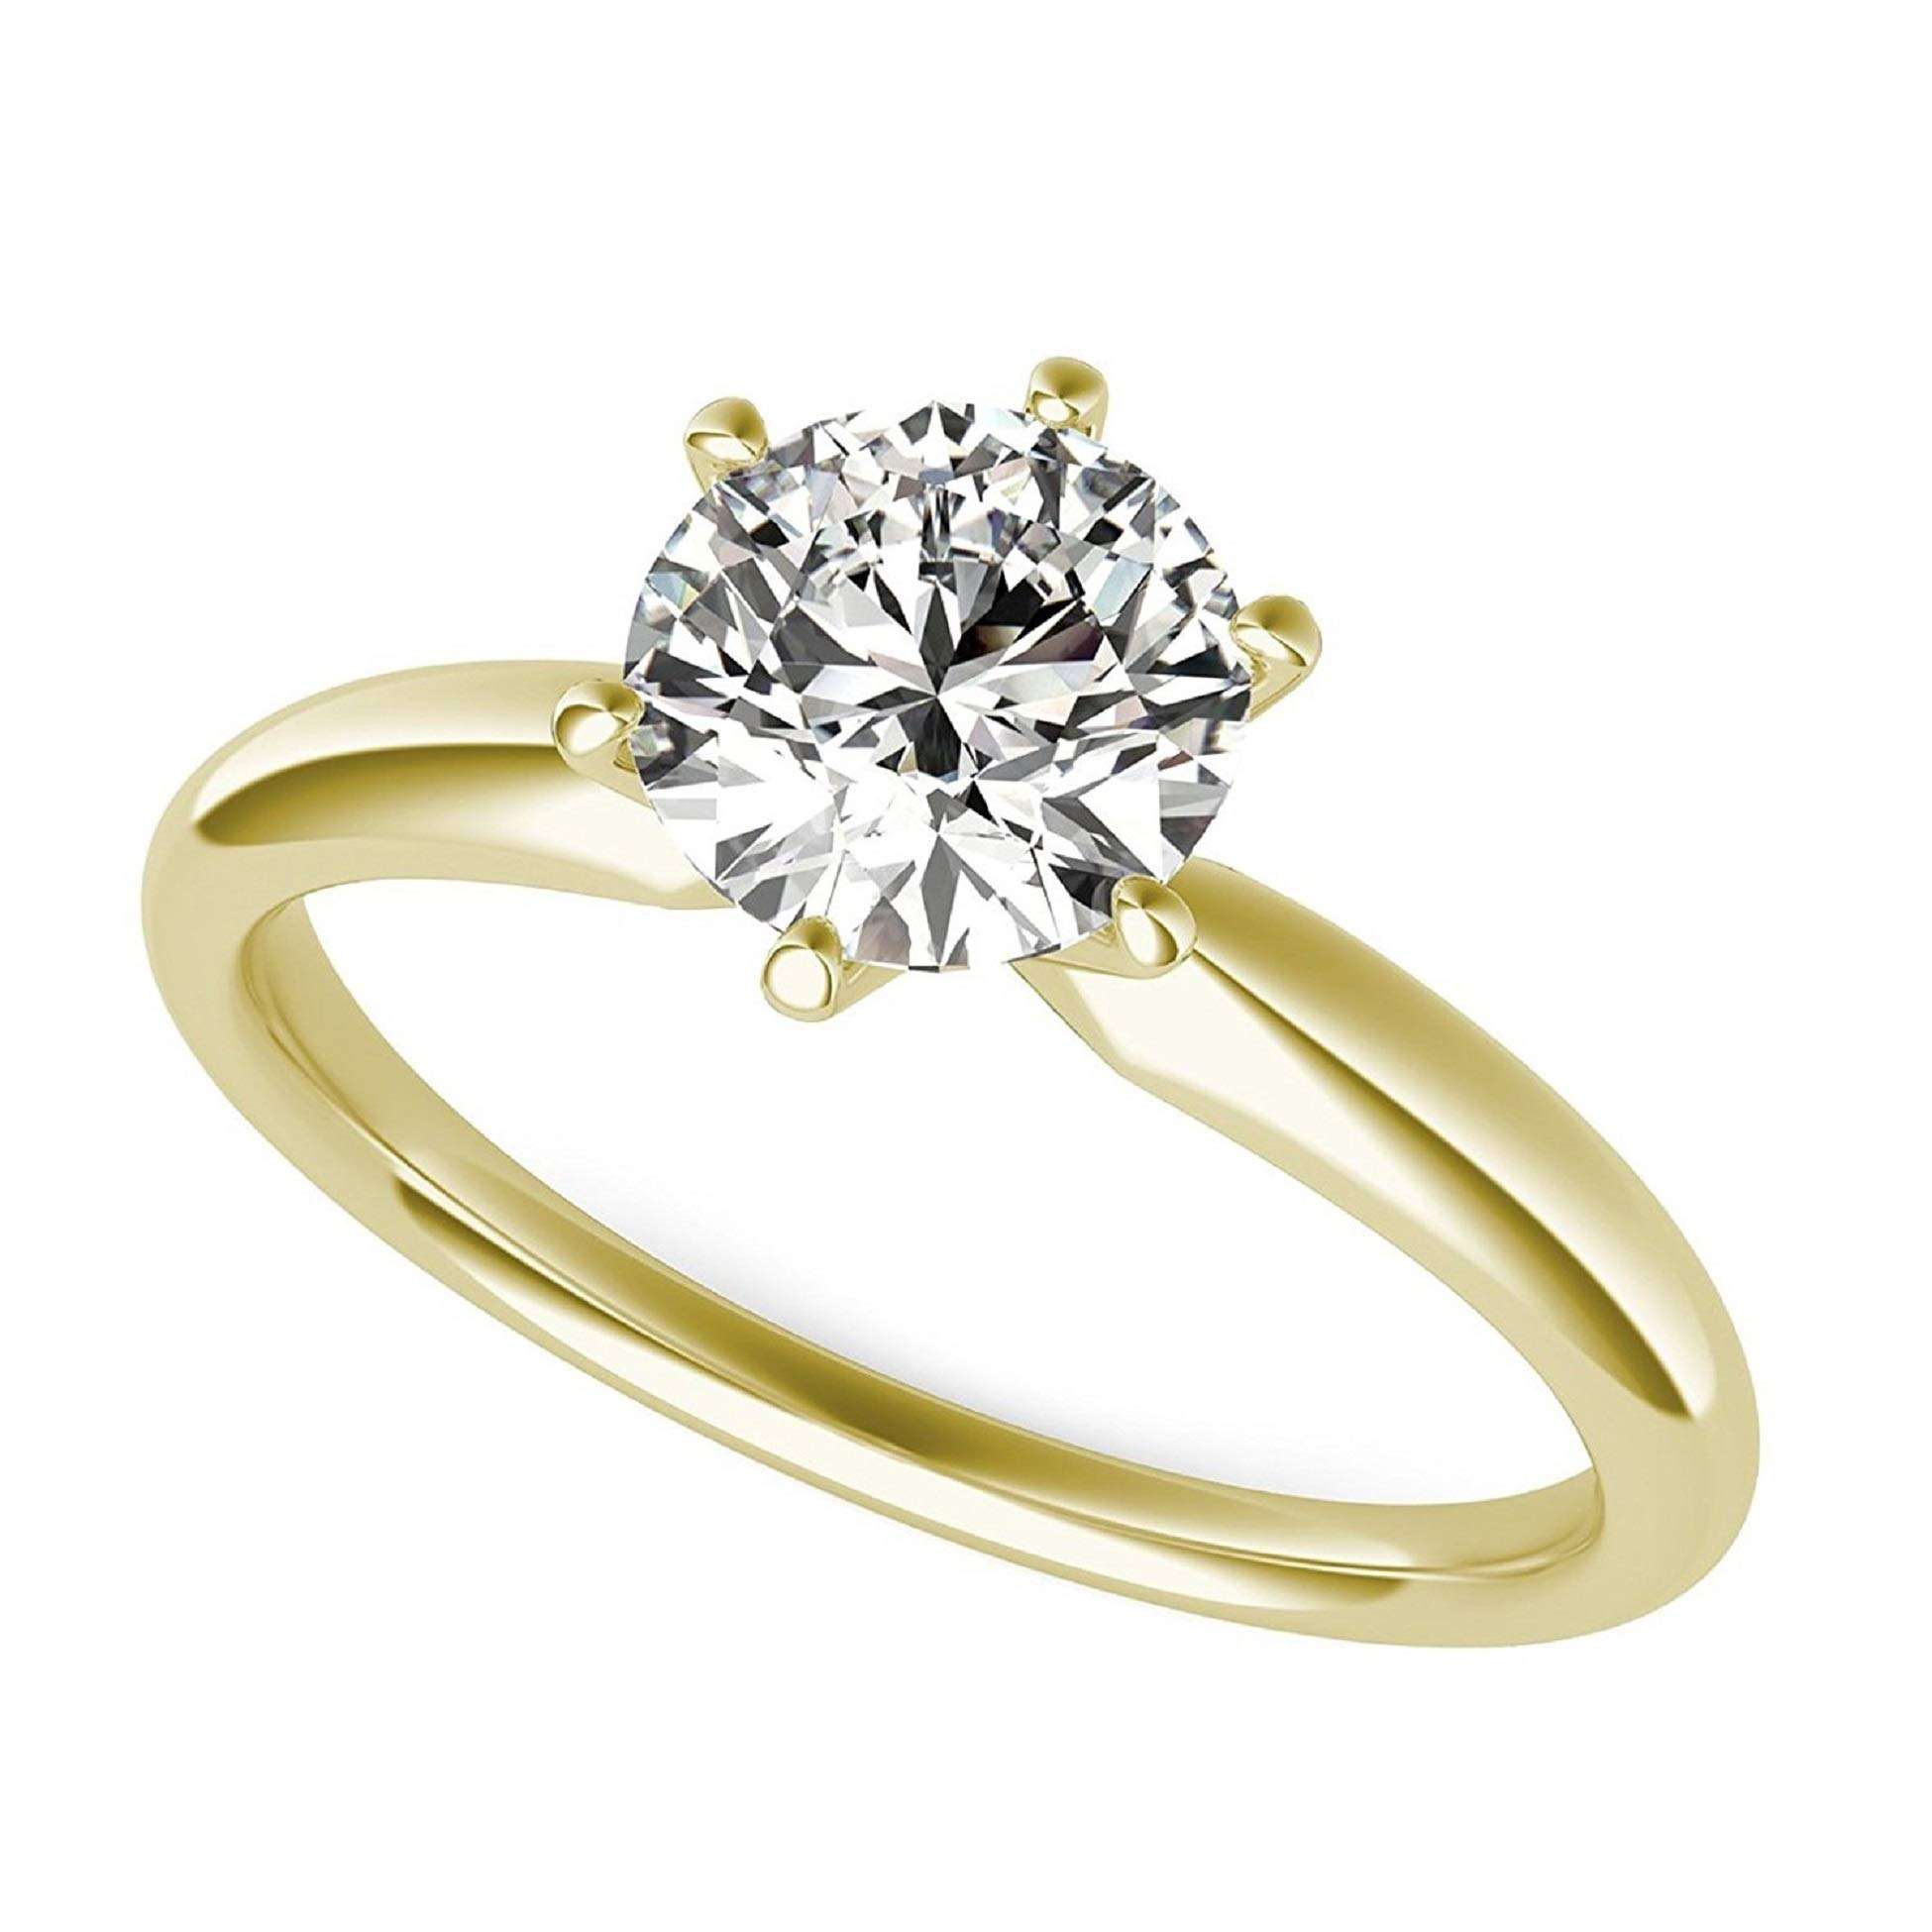 2.0 ct Brilliant Round Cut Solitaire Highest Quality moissanite Engagement Wedding Bridal Promise Anniversary Ring in Solid Real 14k Yellow Gold for Women, Size 8.25